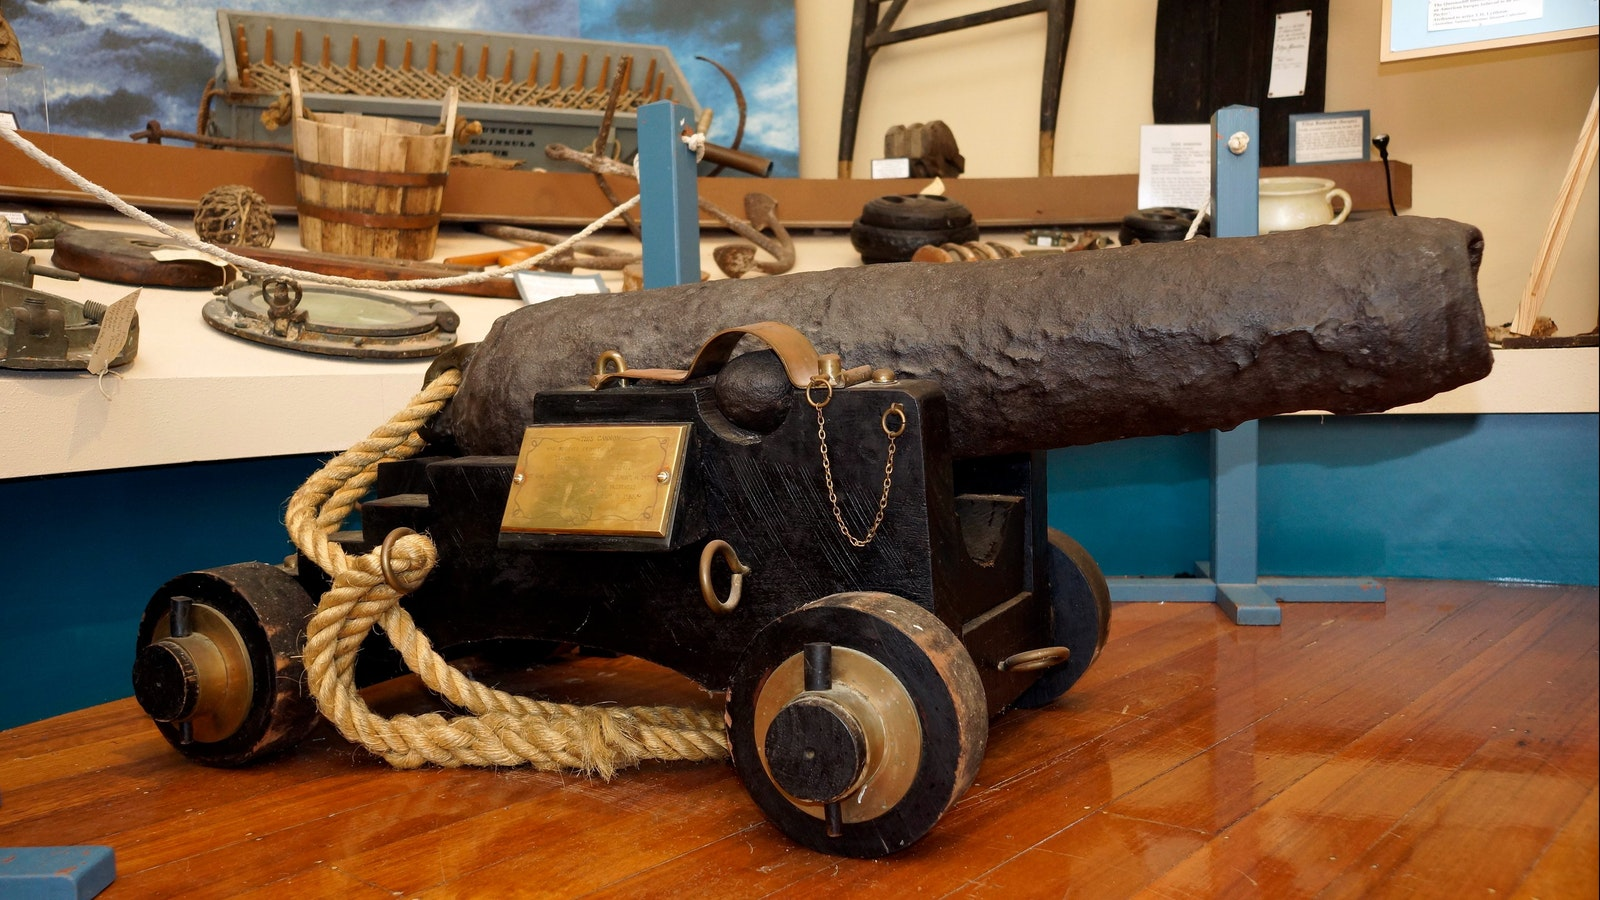 Craigburn Cannon - two and a half feet long gun barrel mounted on wheels, with round cannon balls